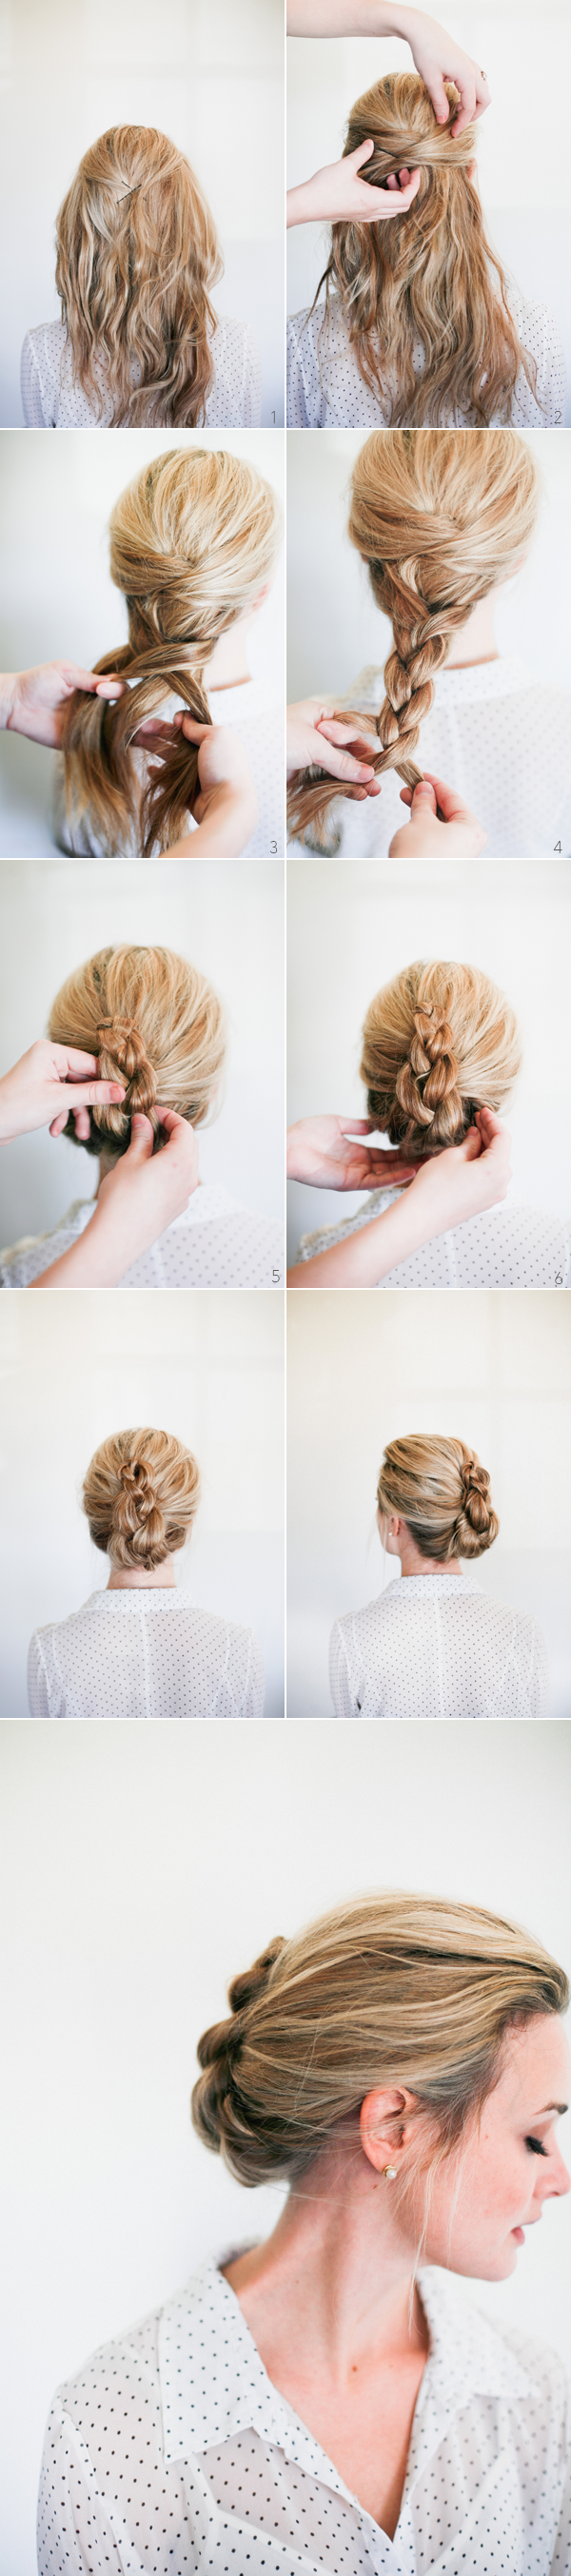 Braided french twist how to once wed french twists super easy